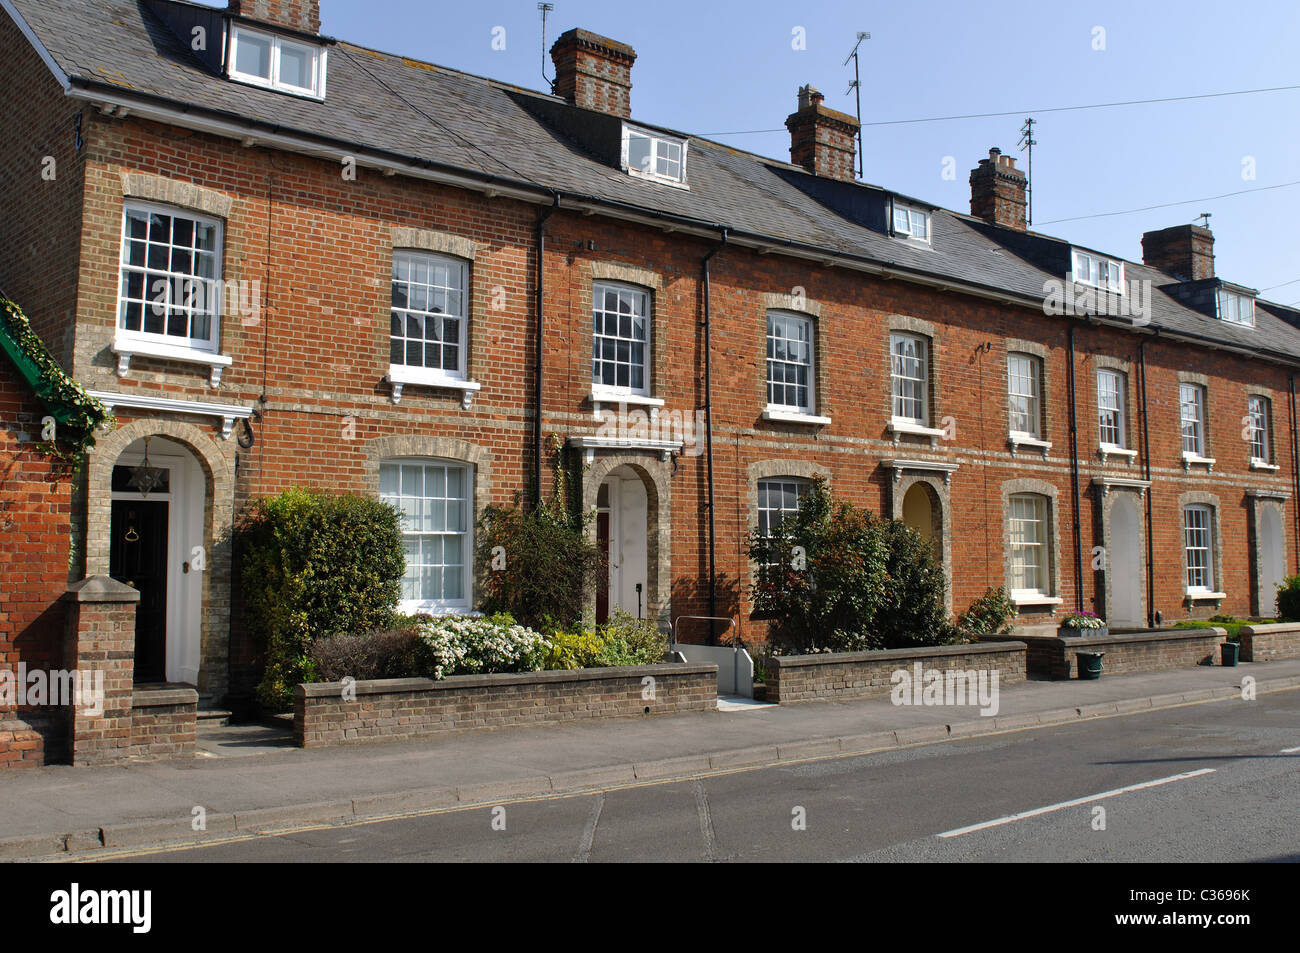 Houses in Portway, Wantage, Oxfordshire, England, UK - Stock Image